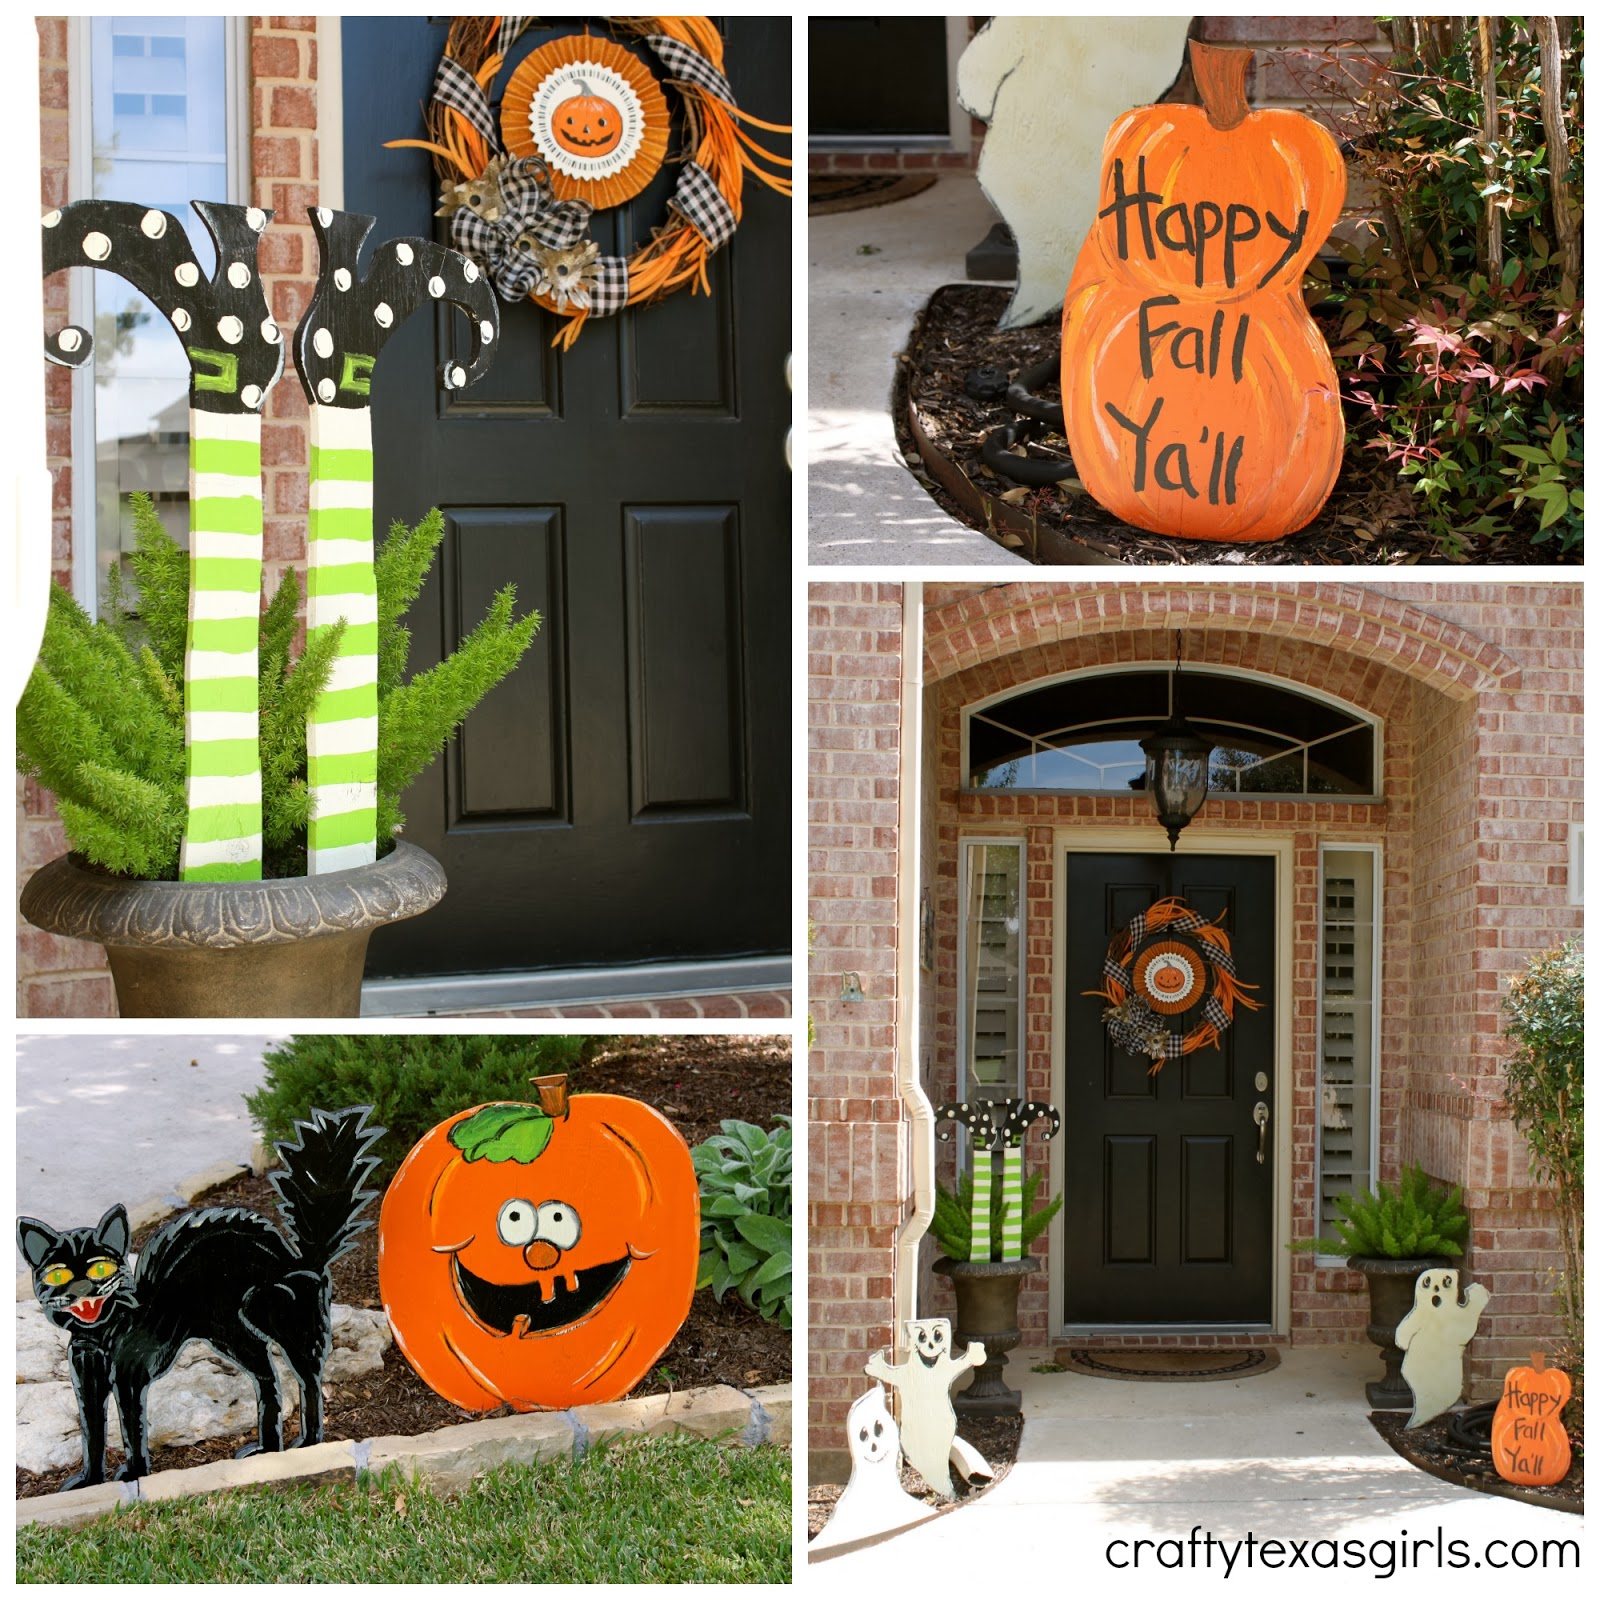 Halloween Home Decor Ideas: Crafty Texas Girls: Halloween House Tour